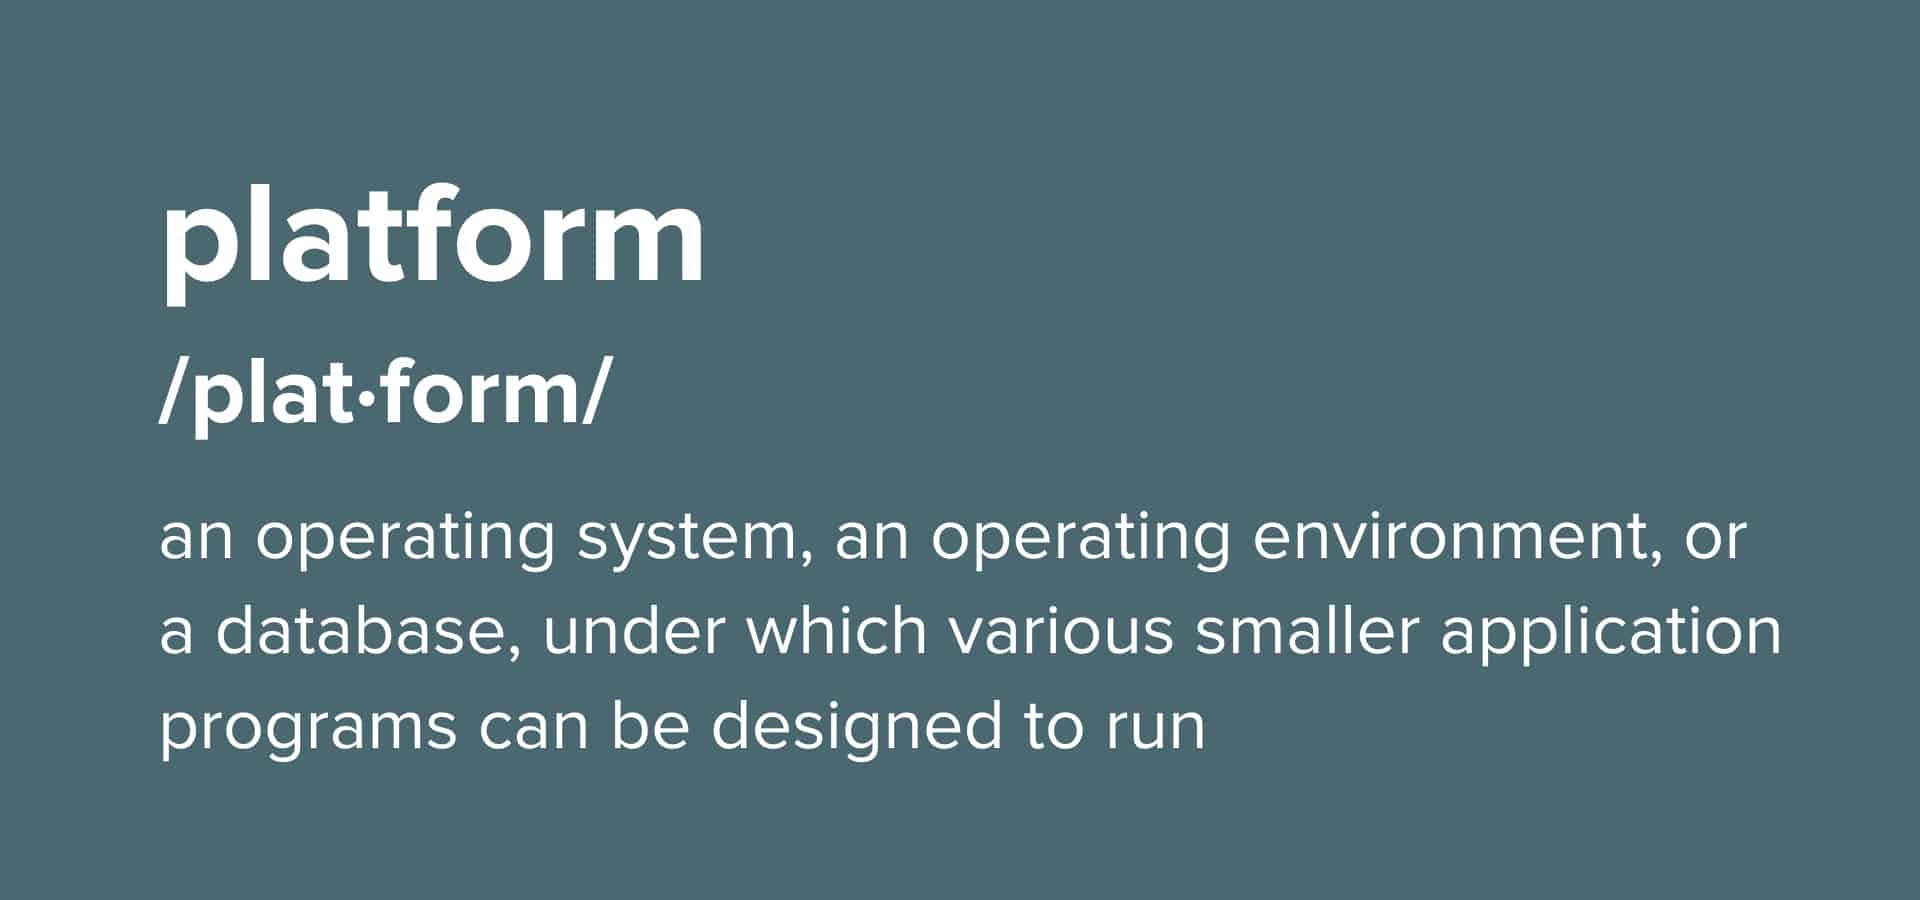 technology platform definition